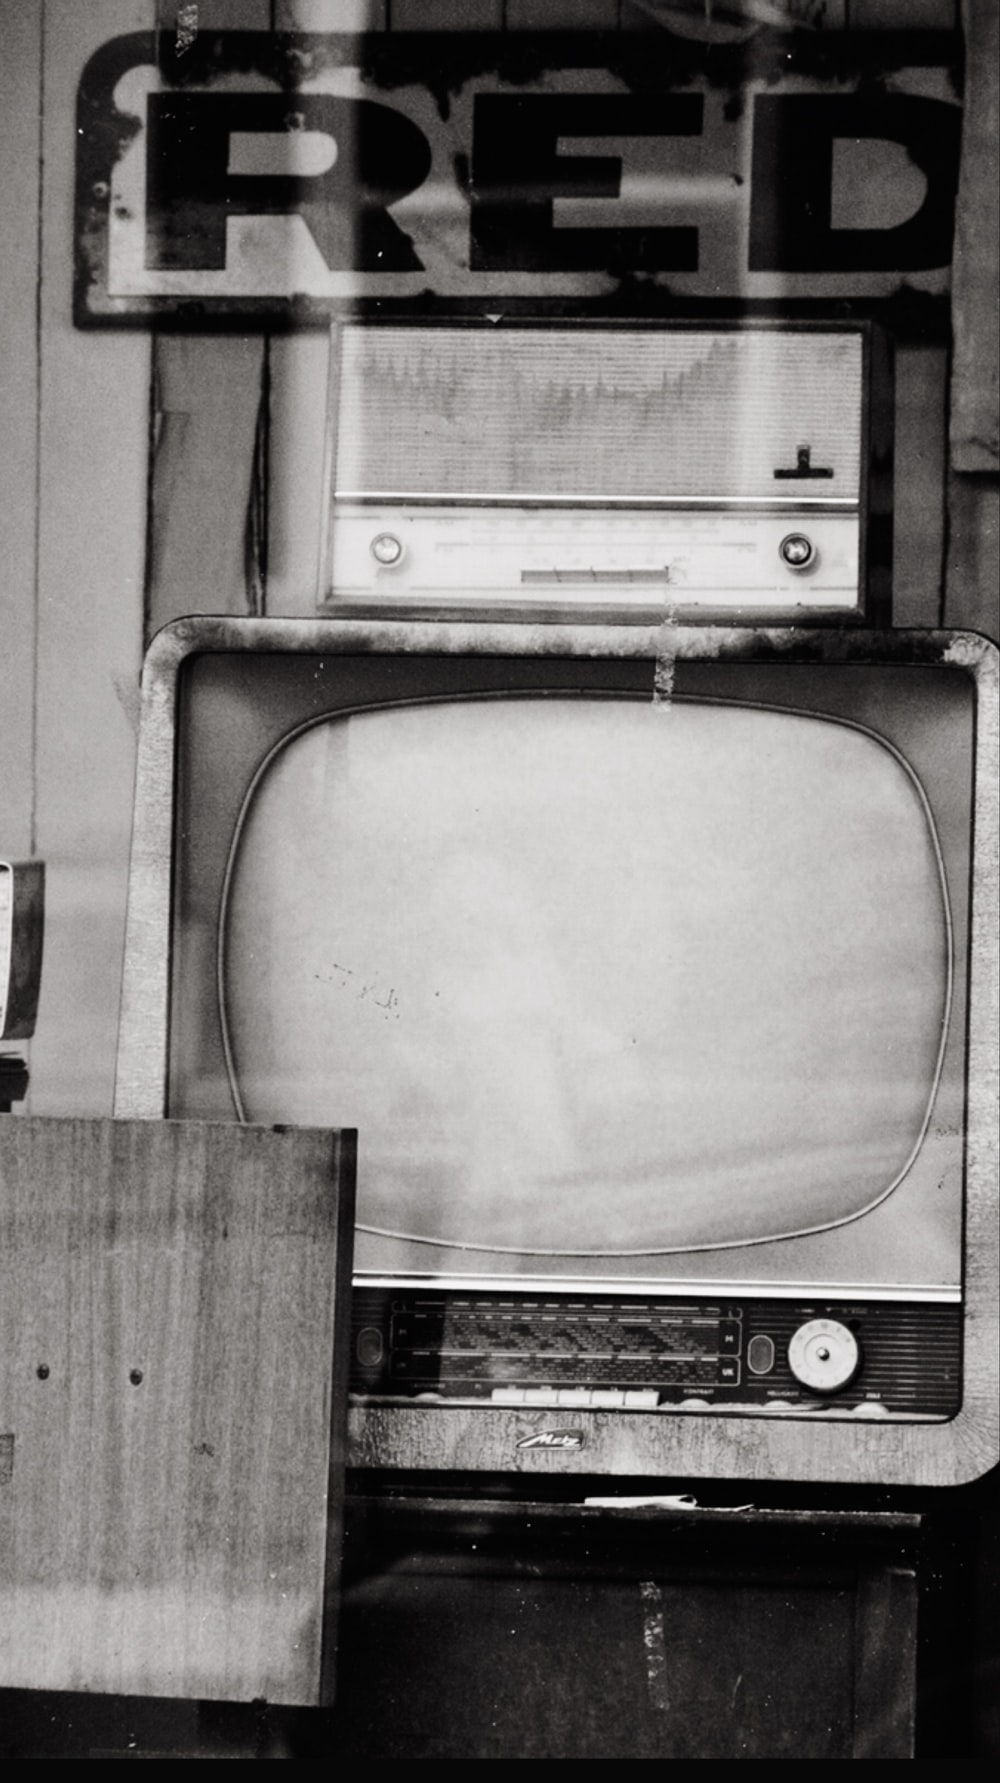 grayscale photo of crt television